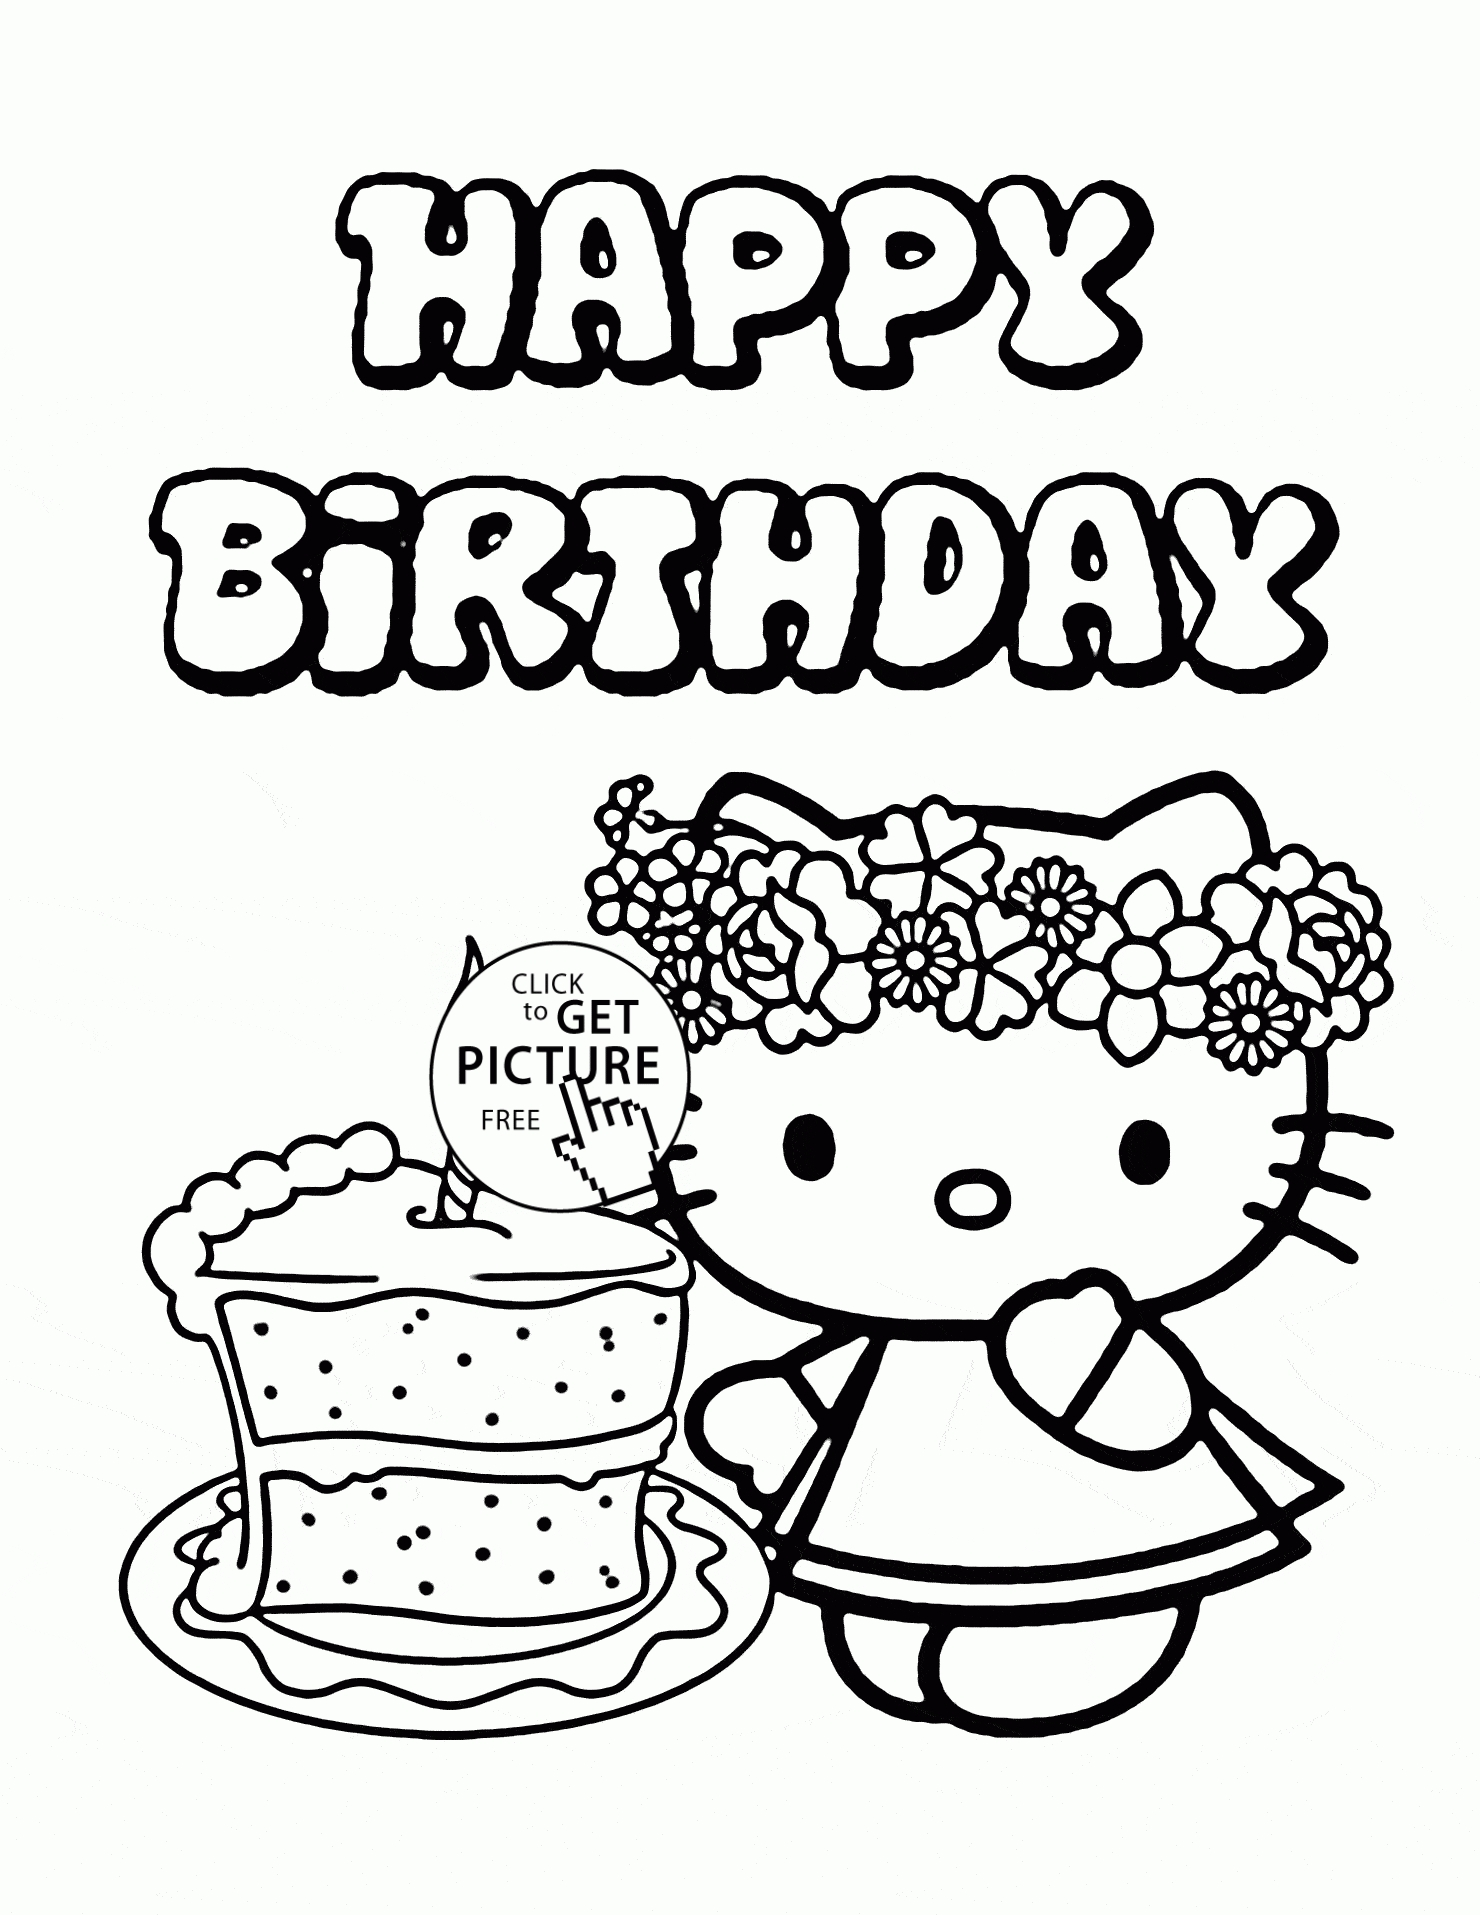 winter coloring pages - birthday cake coloring page preschool hello kitty single birthday cake coloring page for kids holiday